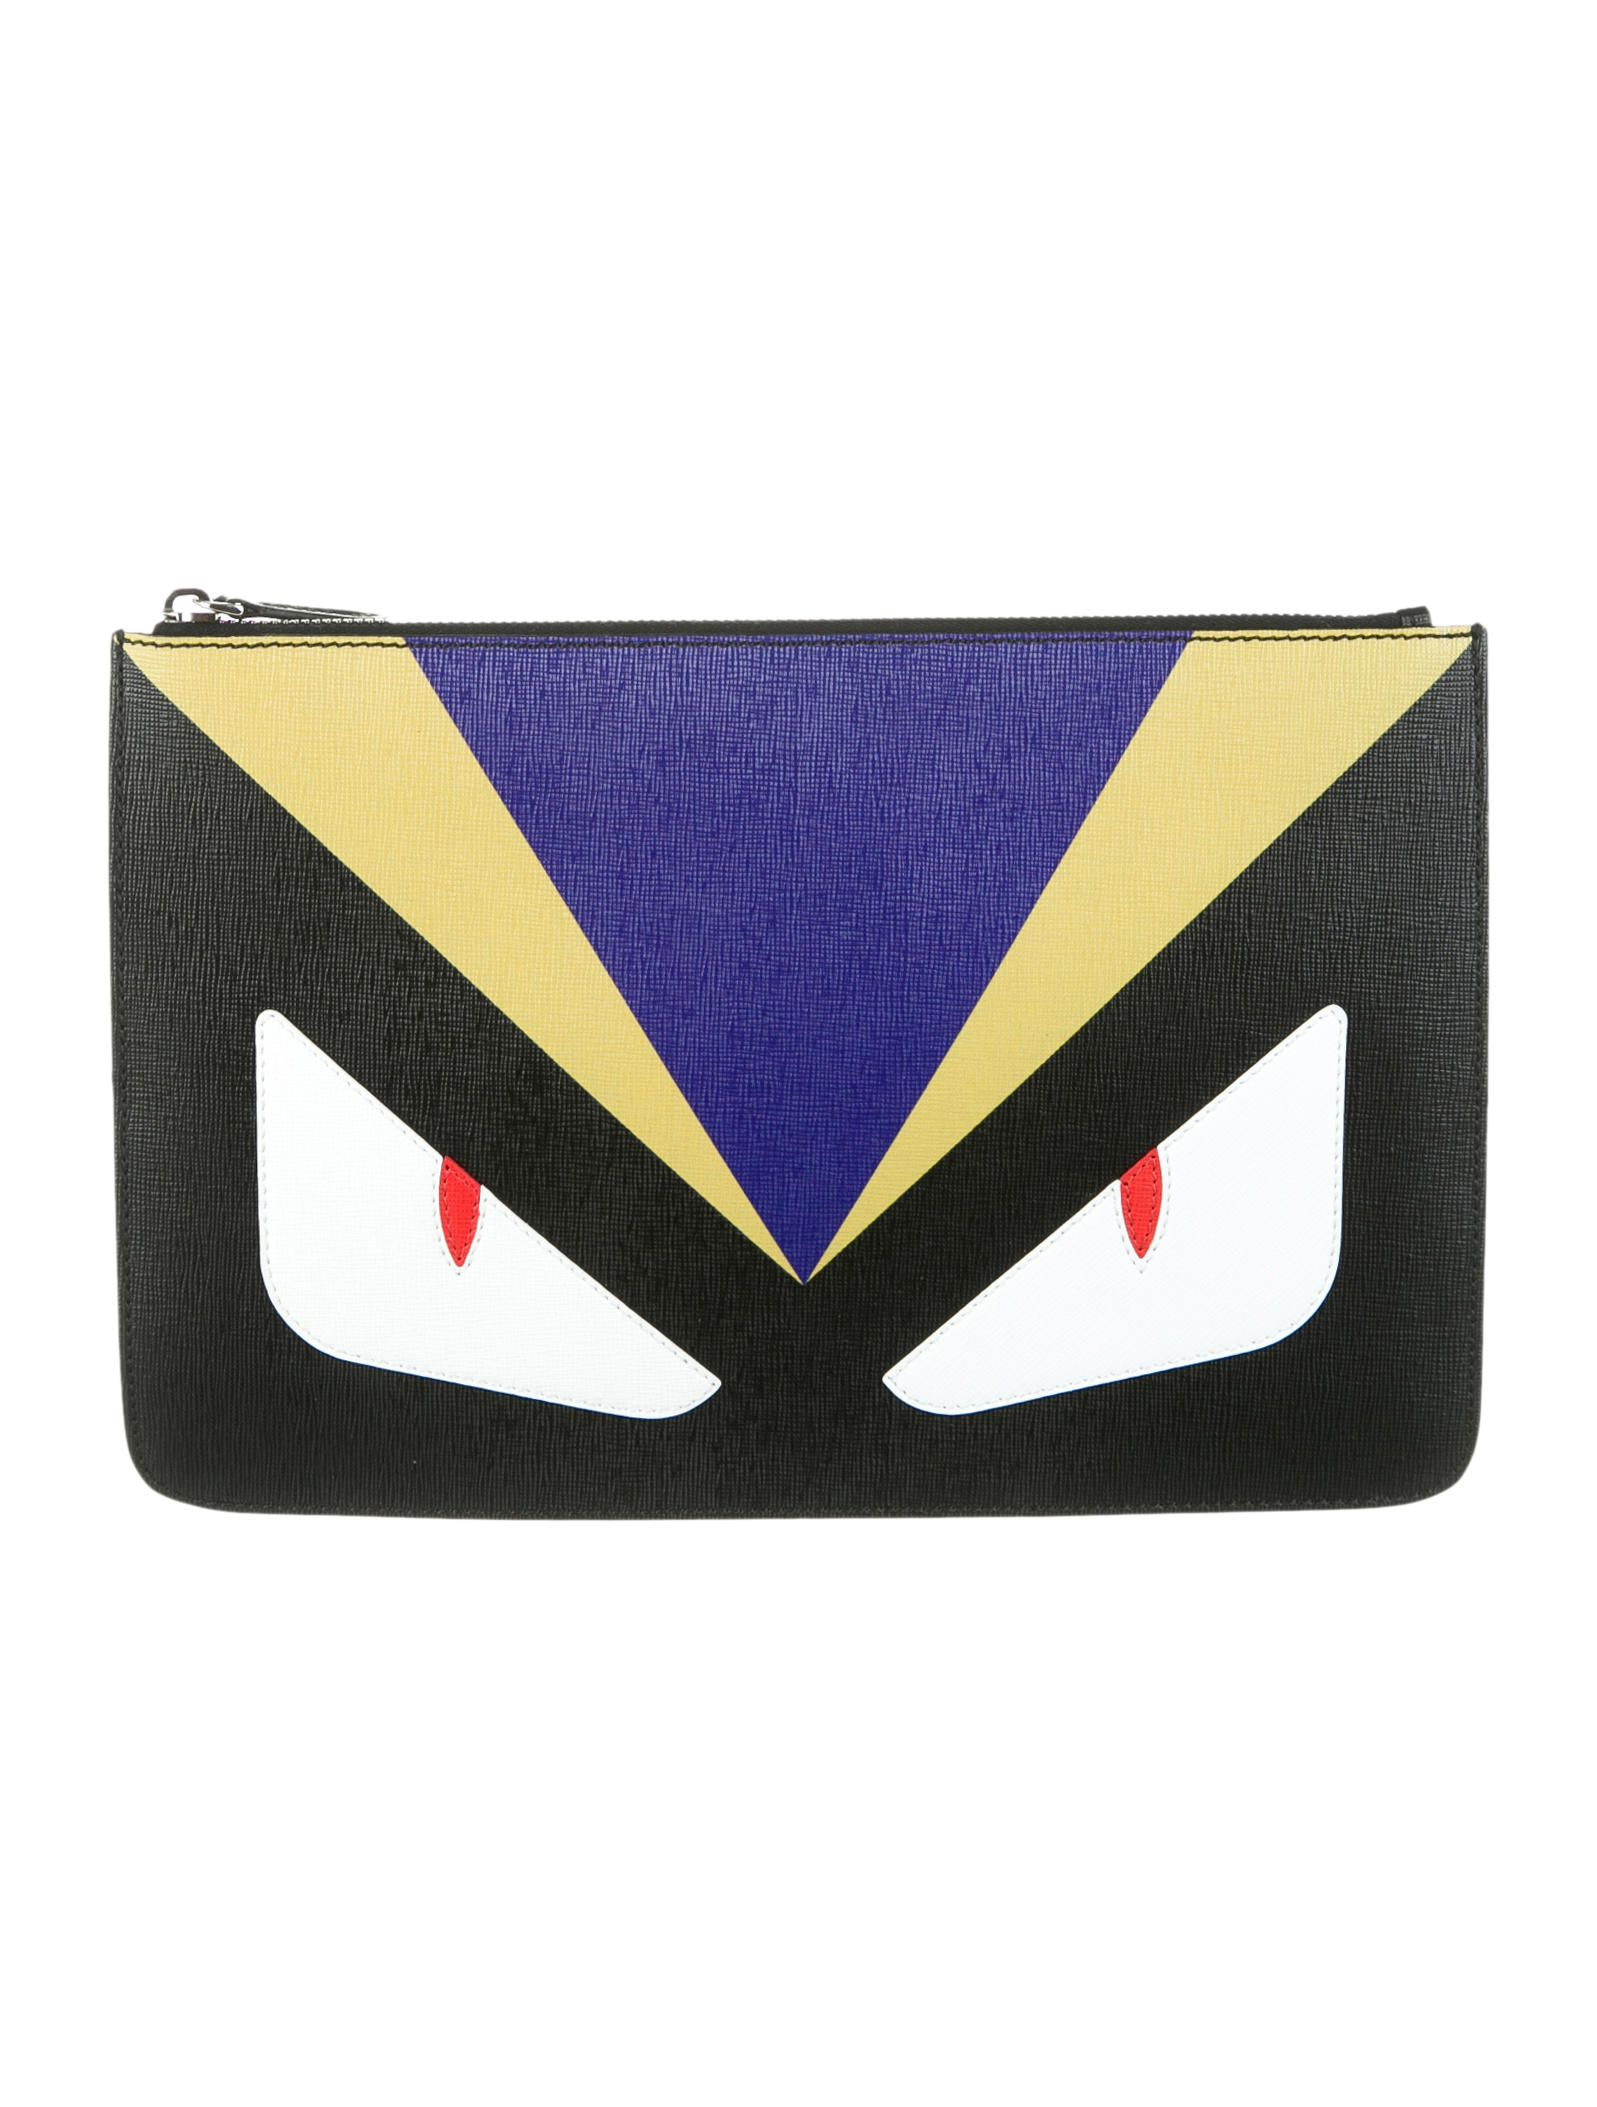 2a712fac5c18 Black and multicolor saffiano leather Fendi Monster Eyes clutch with  silver-tone hardware